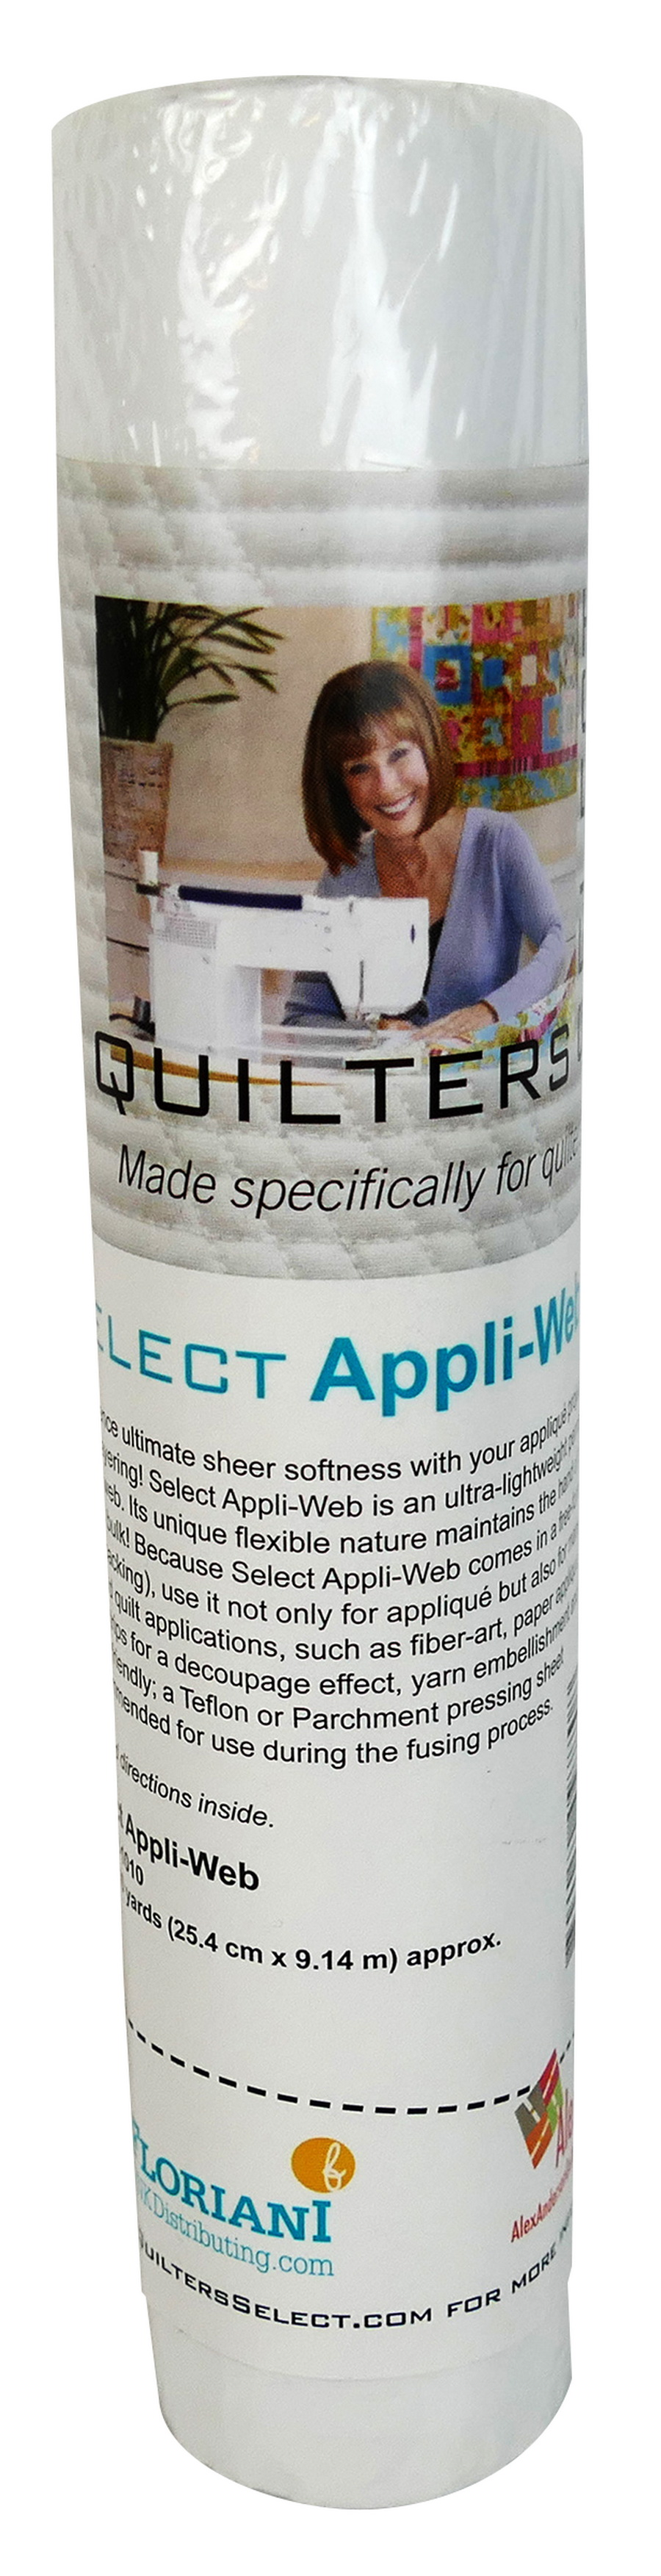 "Quilters Select Appli-Web - 10"" x 10 yds"